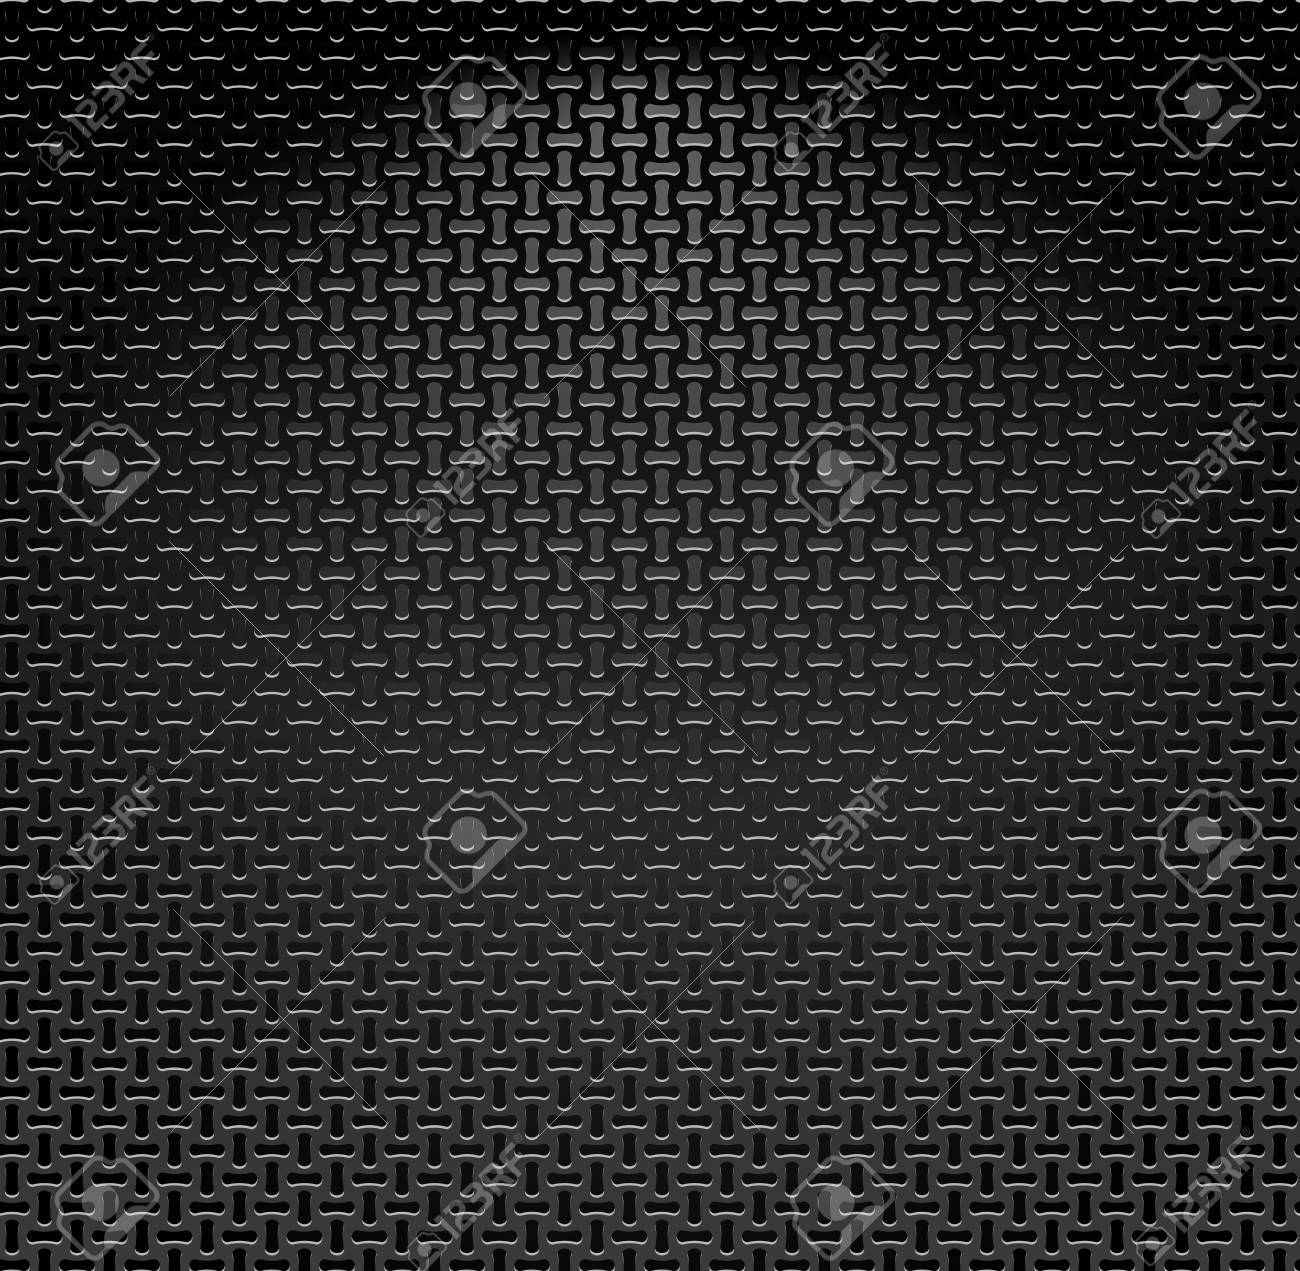 Metallic textured background - seamless pattern Stock Vector - 15480781